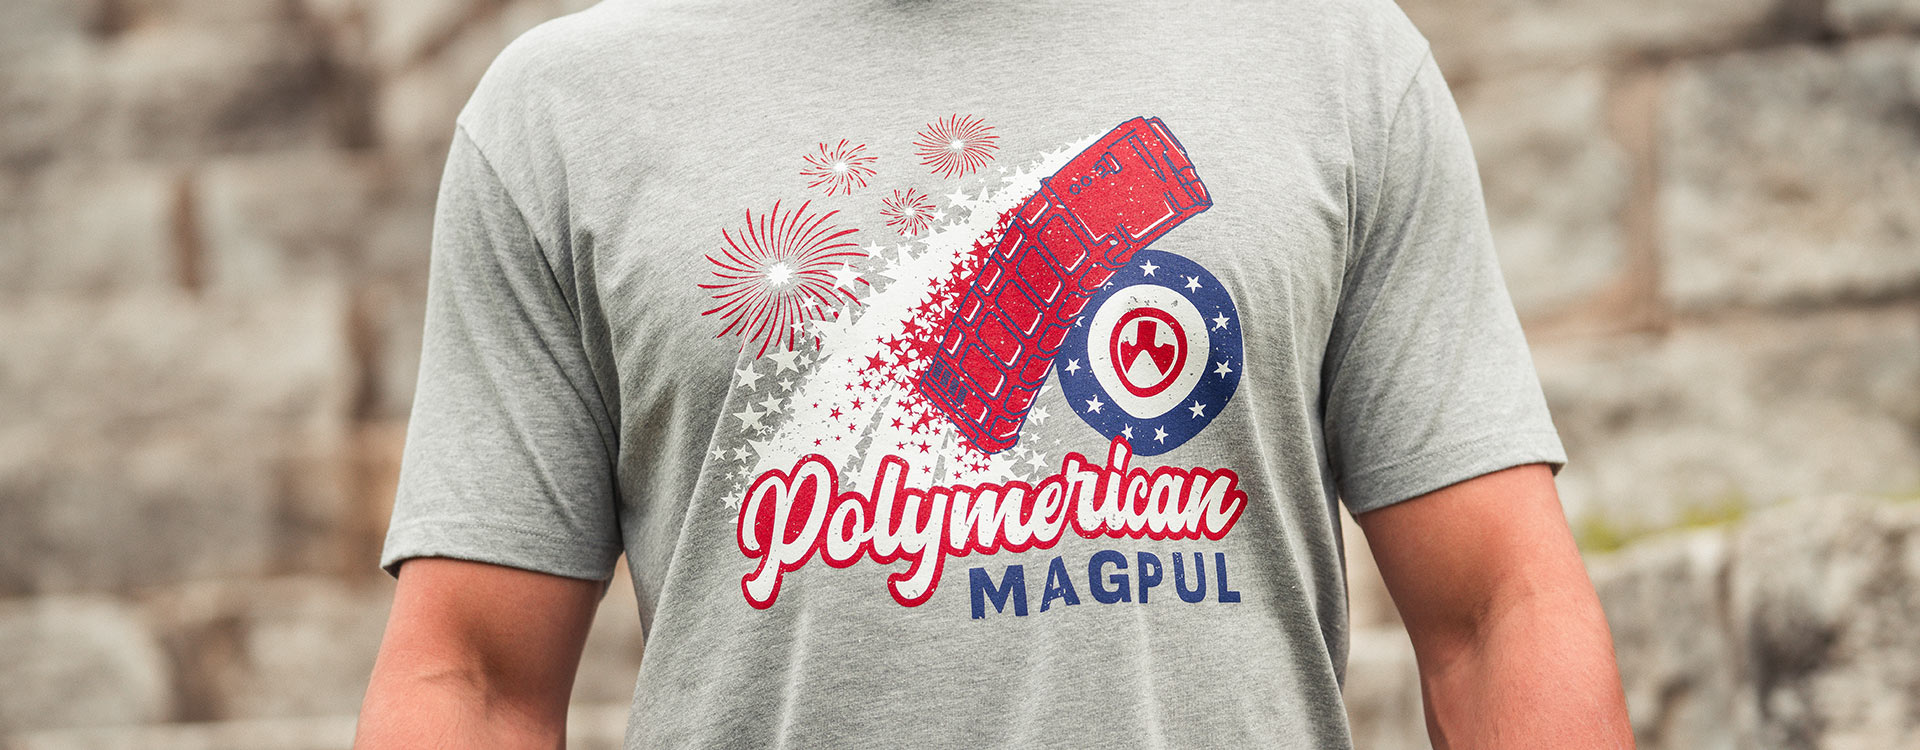 Magpul Polymerican Blend T-Shirt with red, white and blue graphic of fireworks inspired PMAG worn by nondescript man outdoors